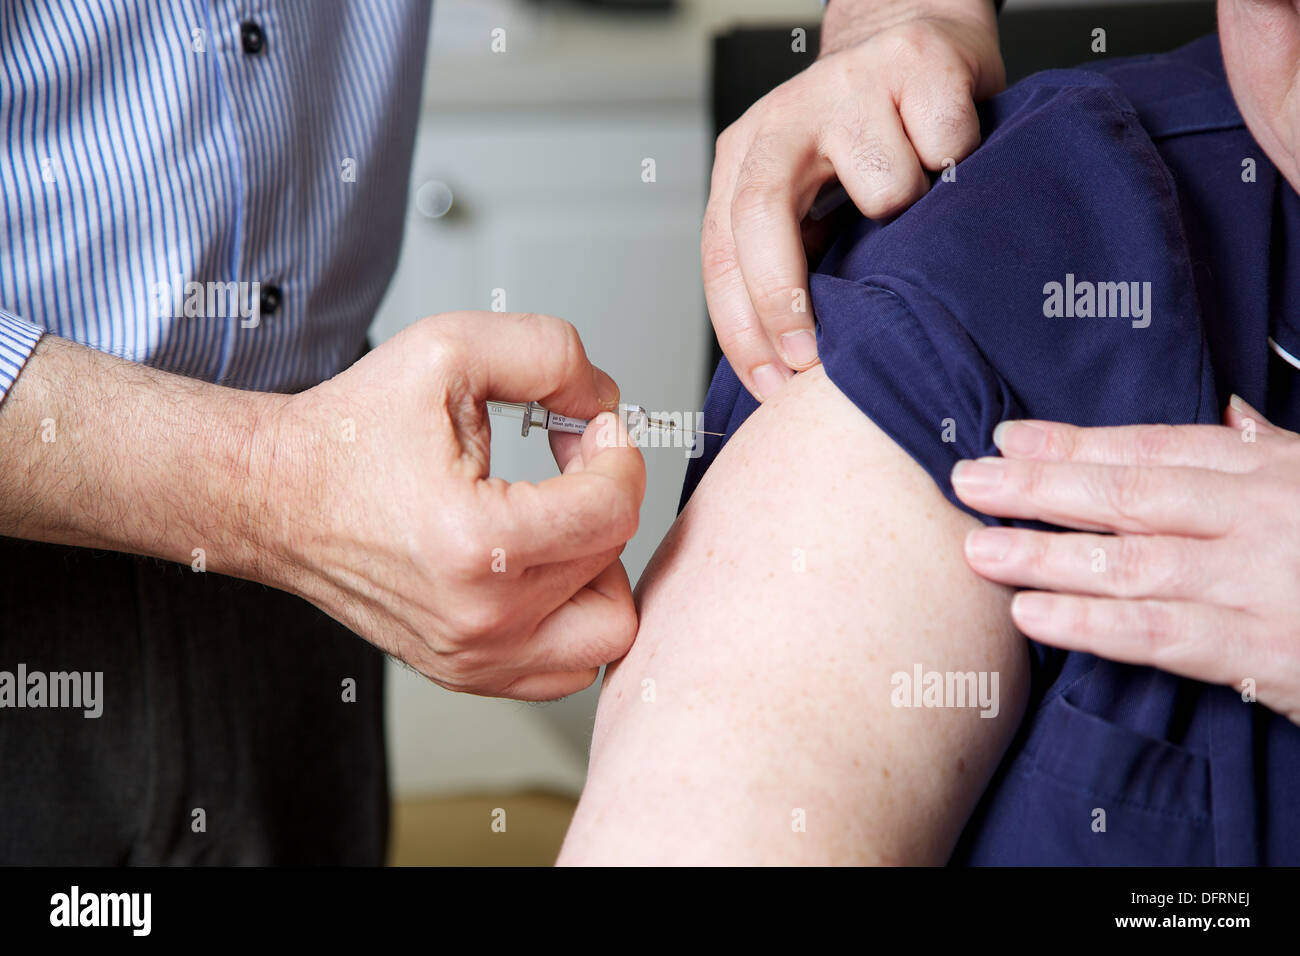 Doctor GP prepares to give the flu jab injection to a patient - Stock Image